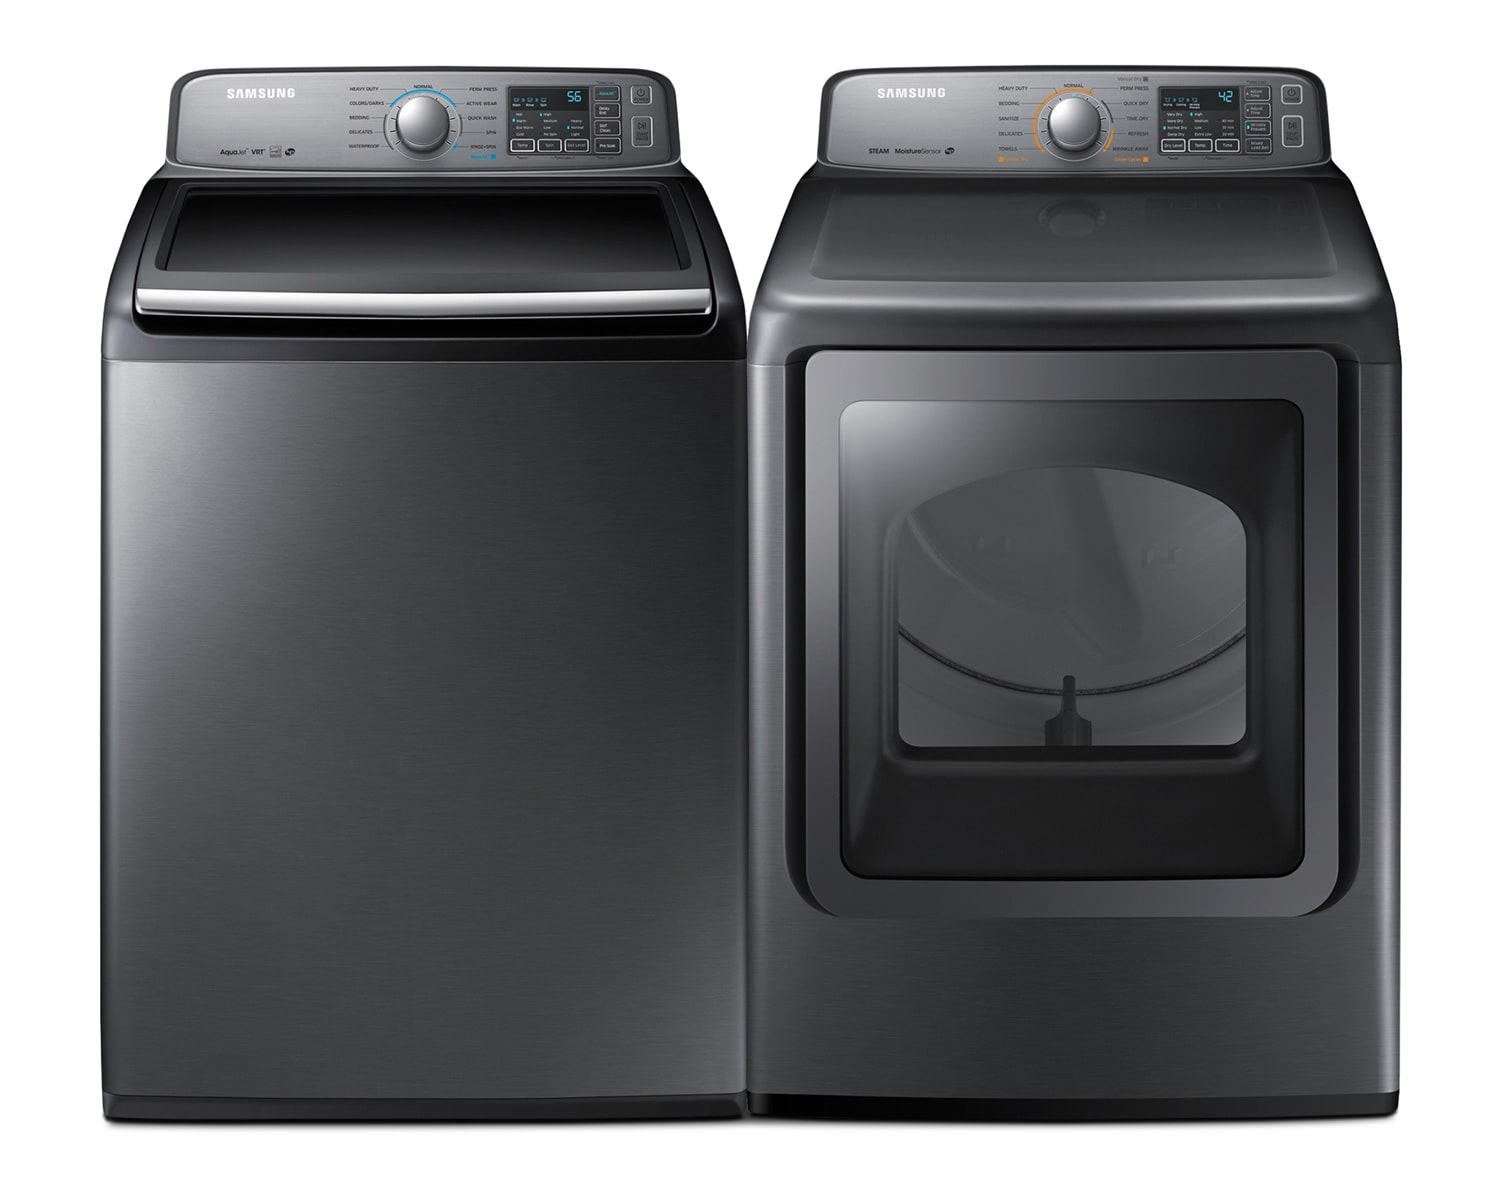 washer and dryers  samsung steam washer and dryer